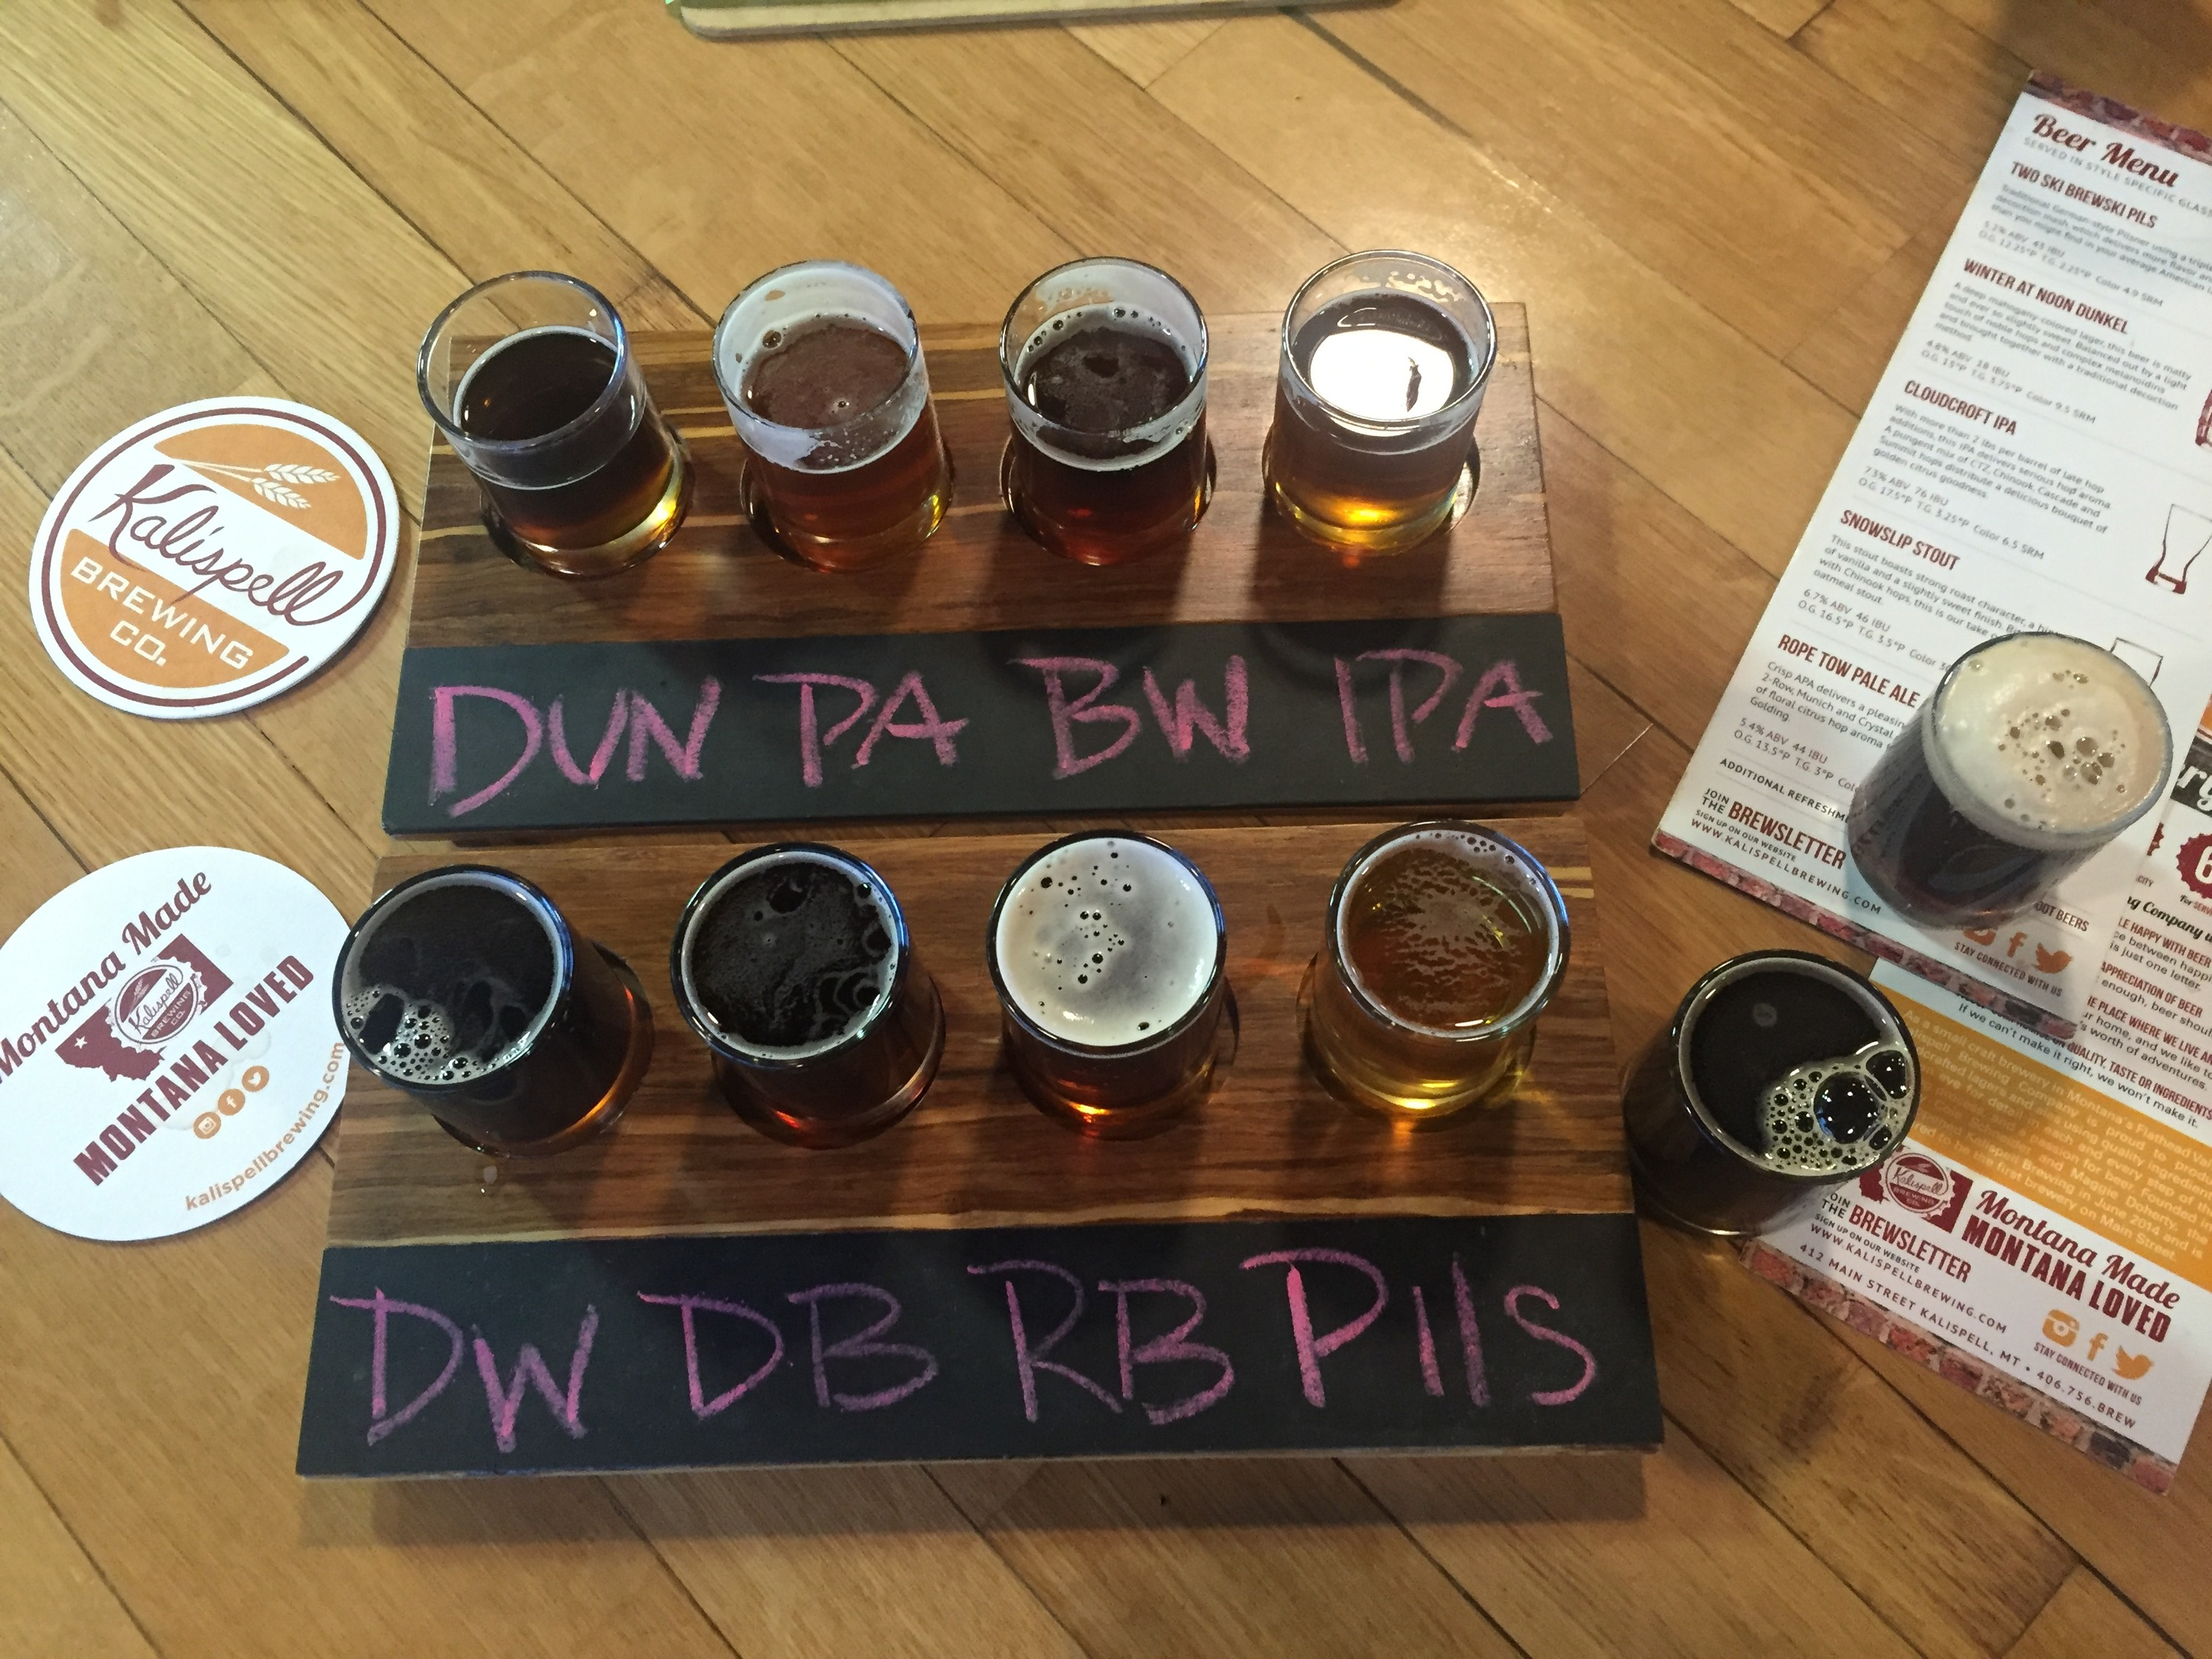 Grab a beer at Kalispell Brewing